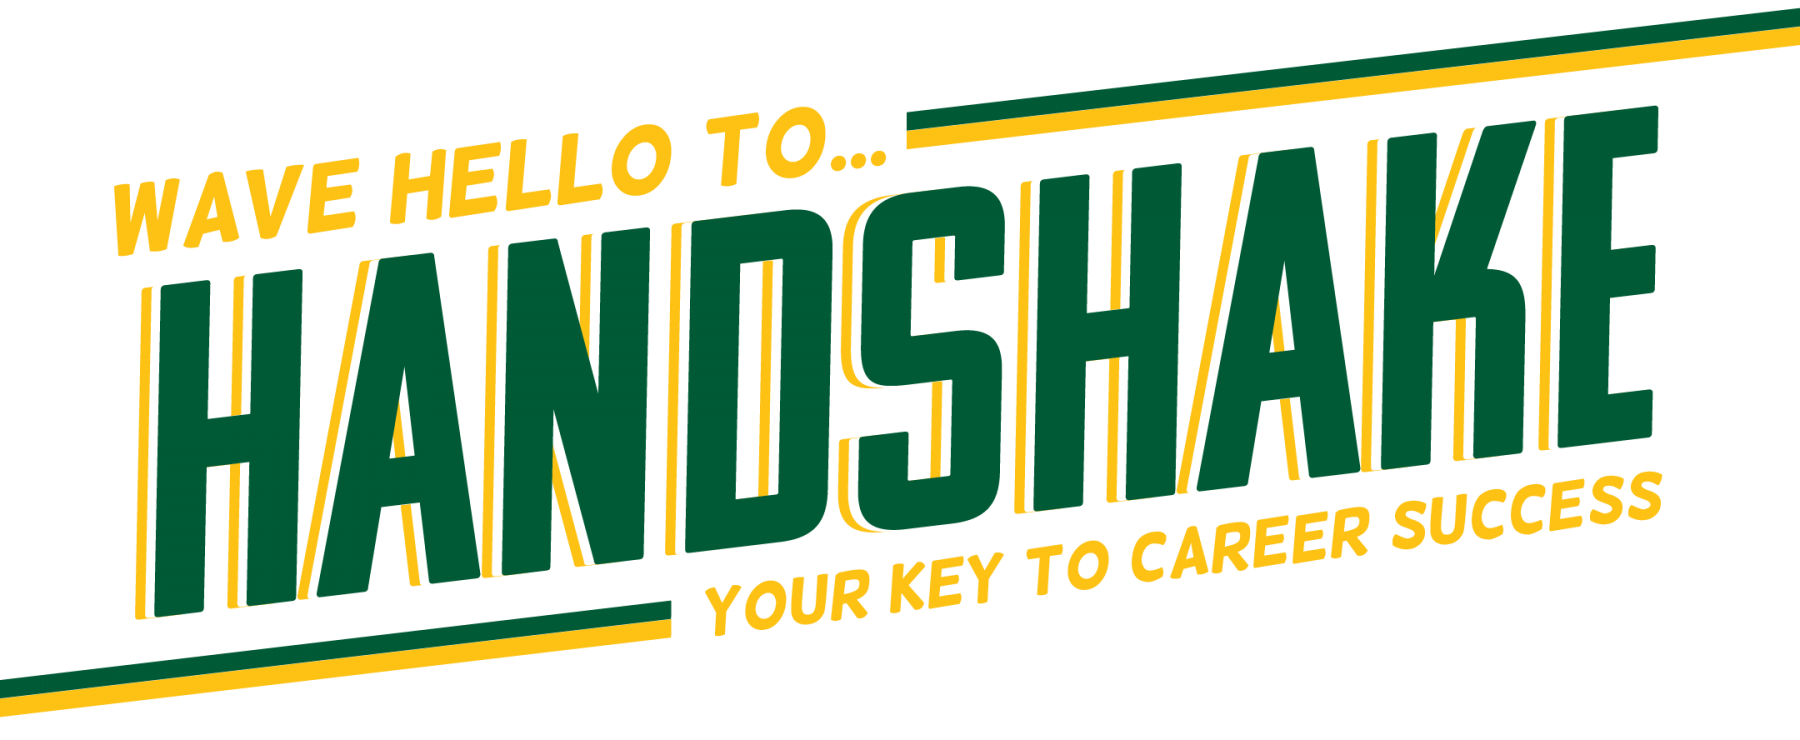 Wave Hello to Handshake, Your Key To Career Success!